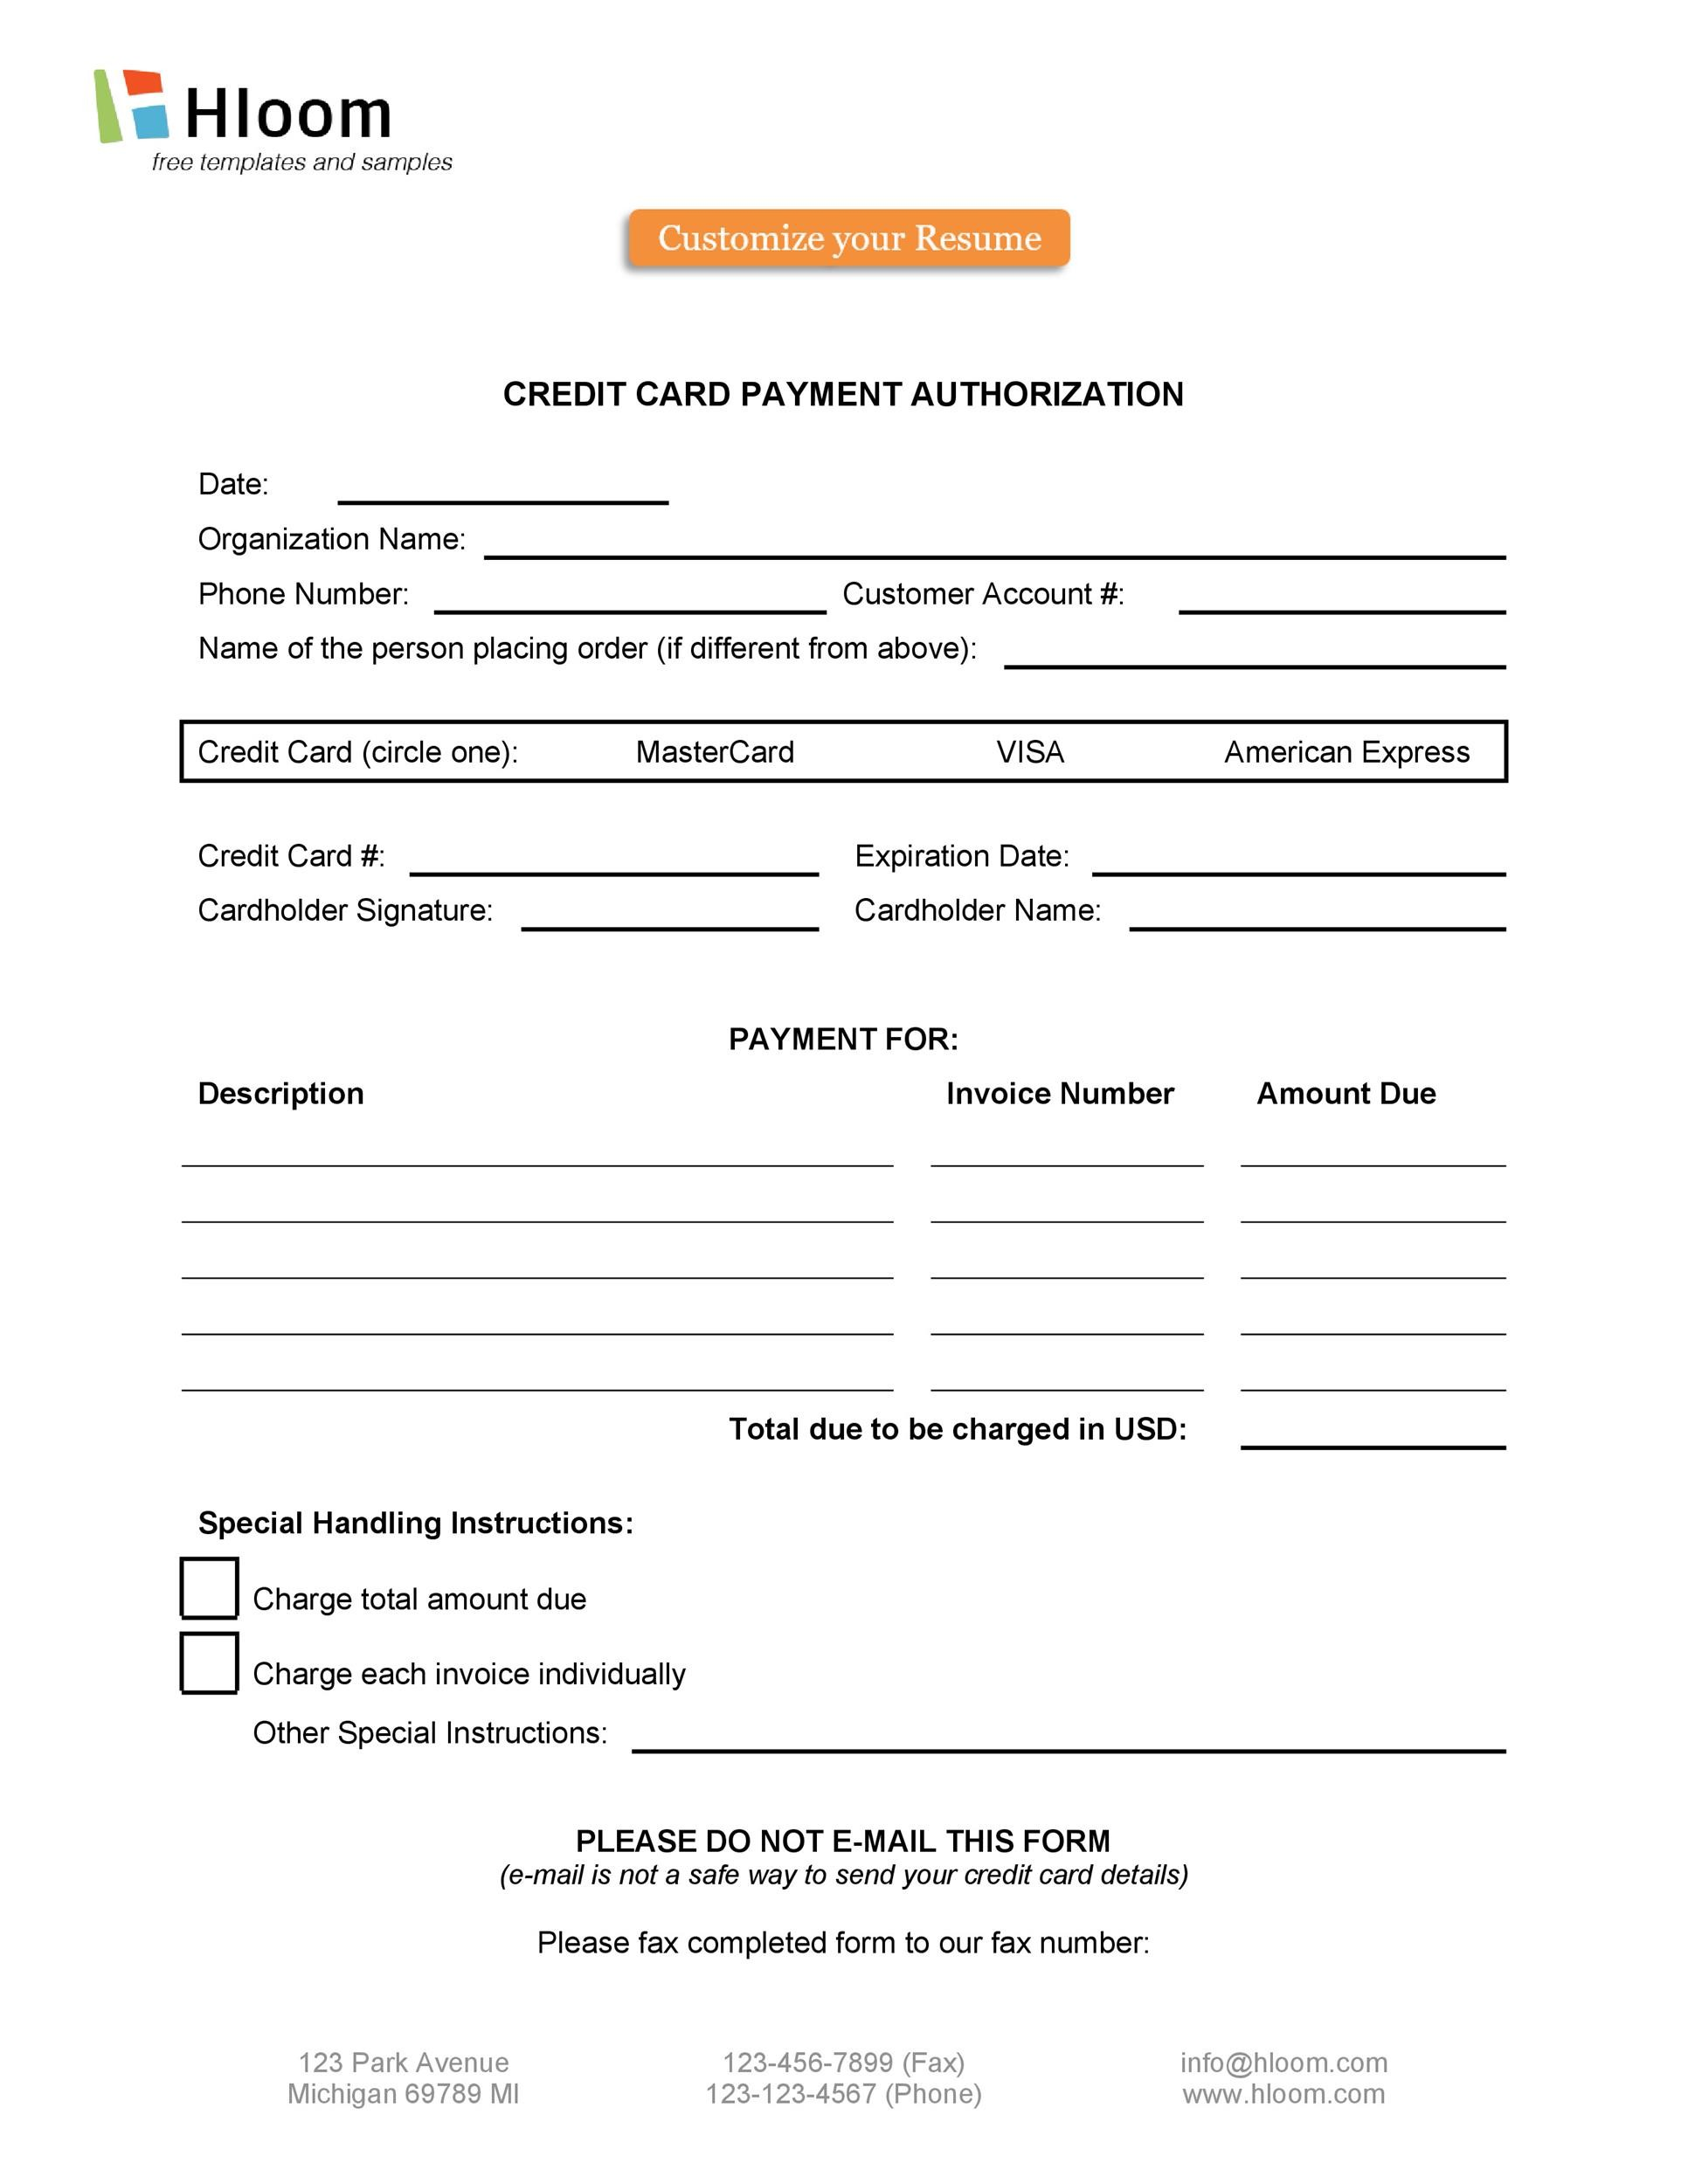 Free credit card authorization form template 38